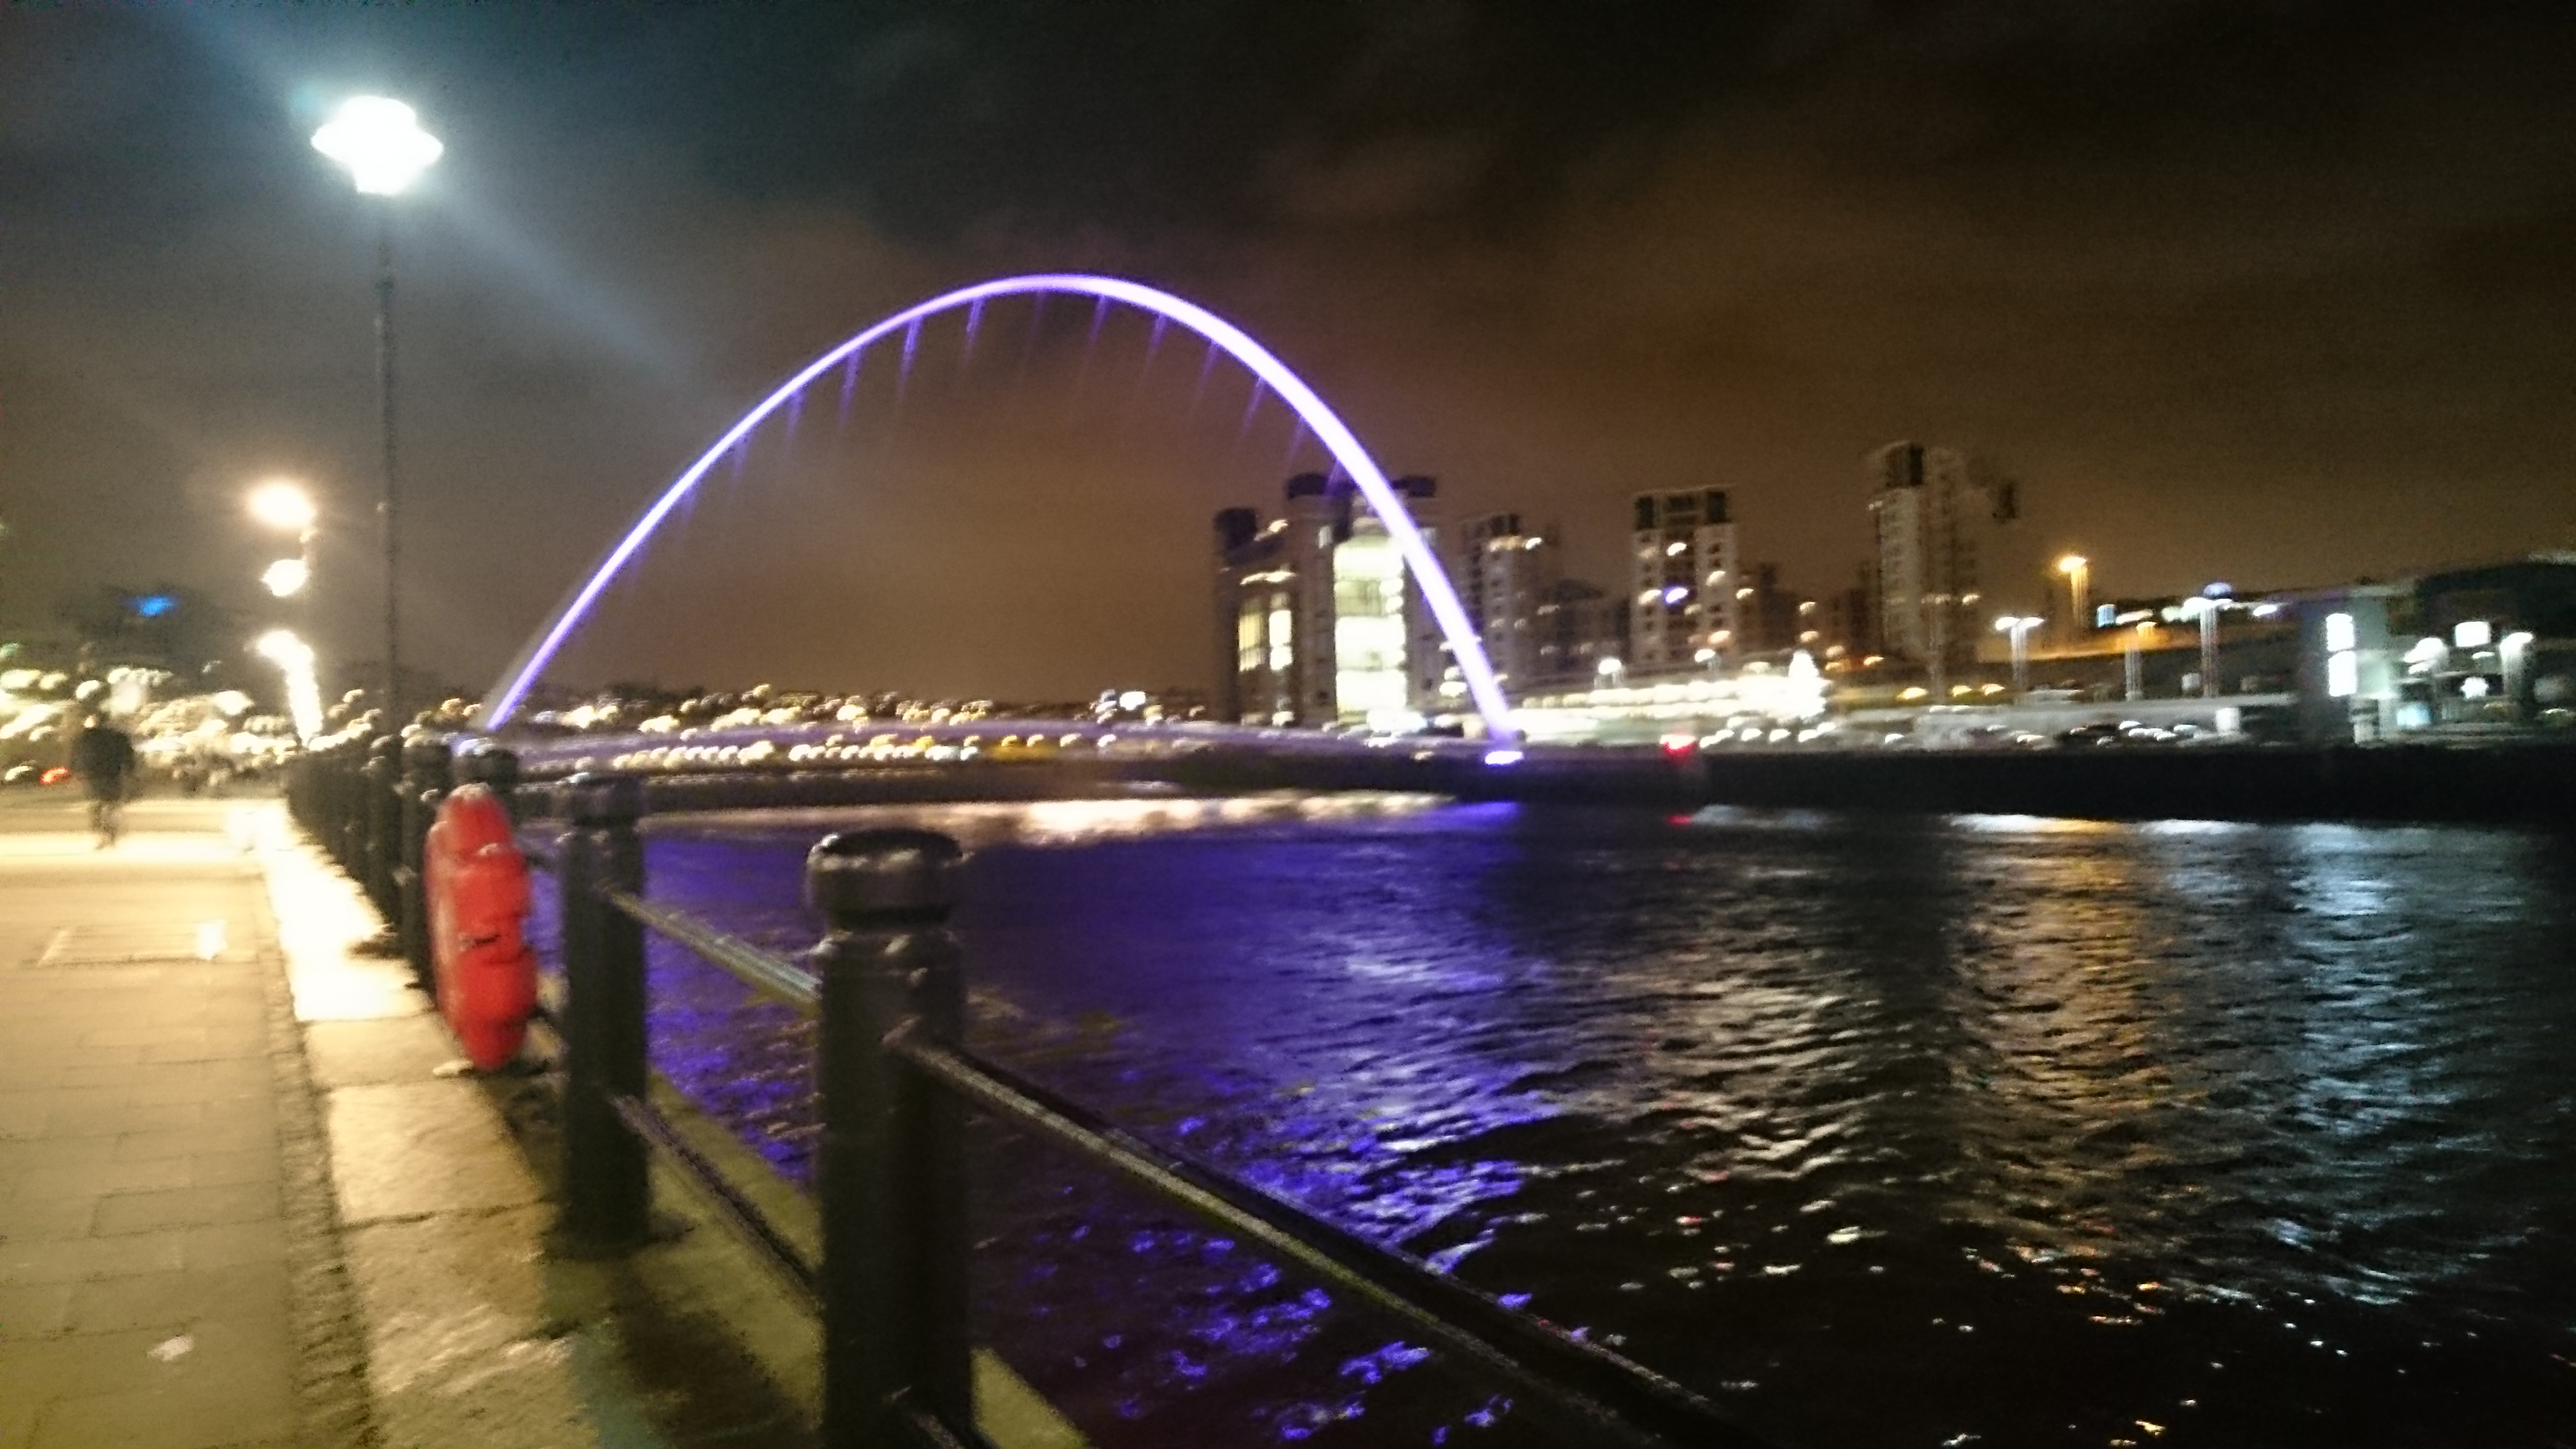 newcastle upon tyne big and beautiful singles In big cities like newcastle upon tyne, dating sites could be really useful and effective life in cities or remote parts of the country leaves very little room for personal life it is no wonder many people are looking for love and friendship online.